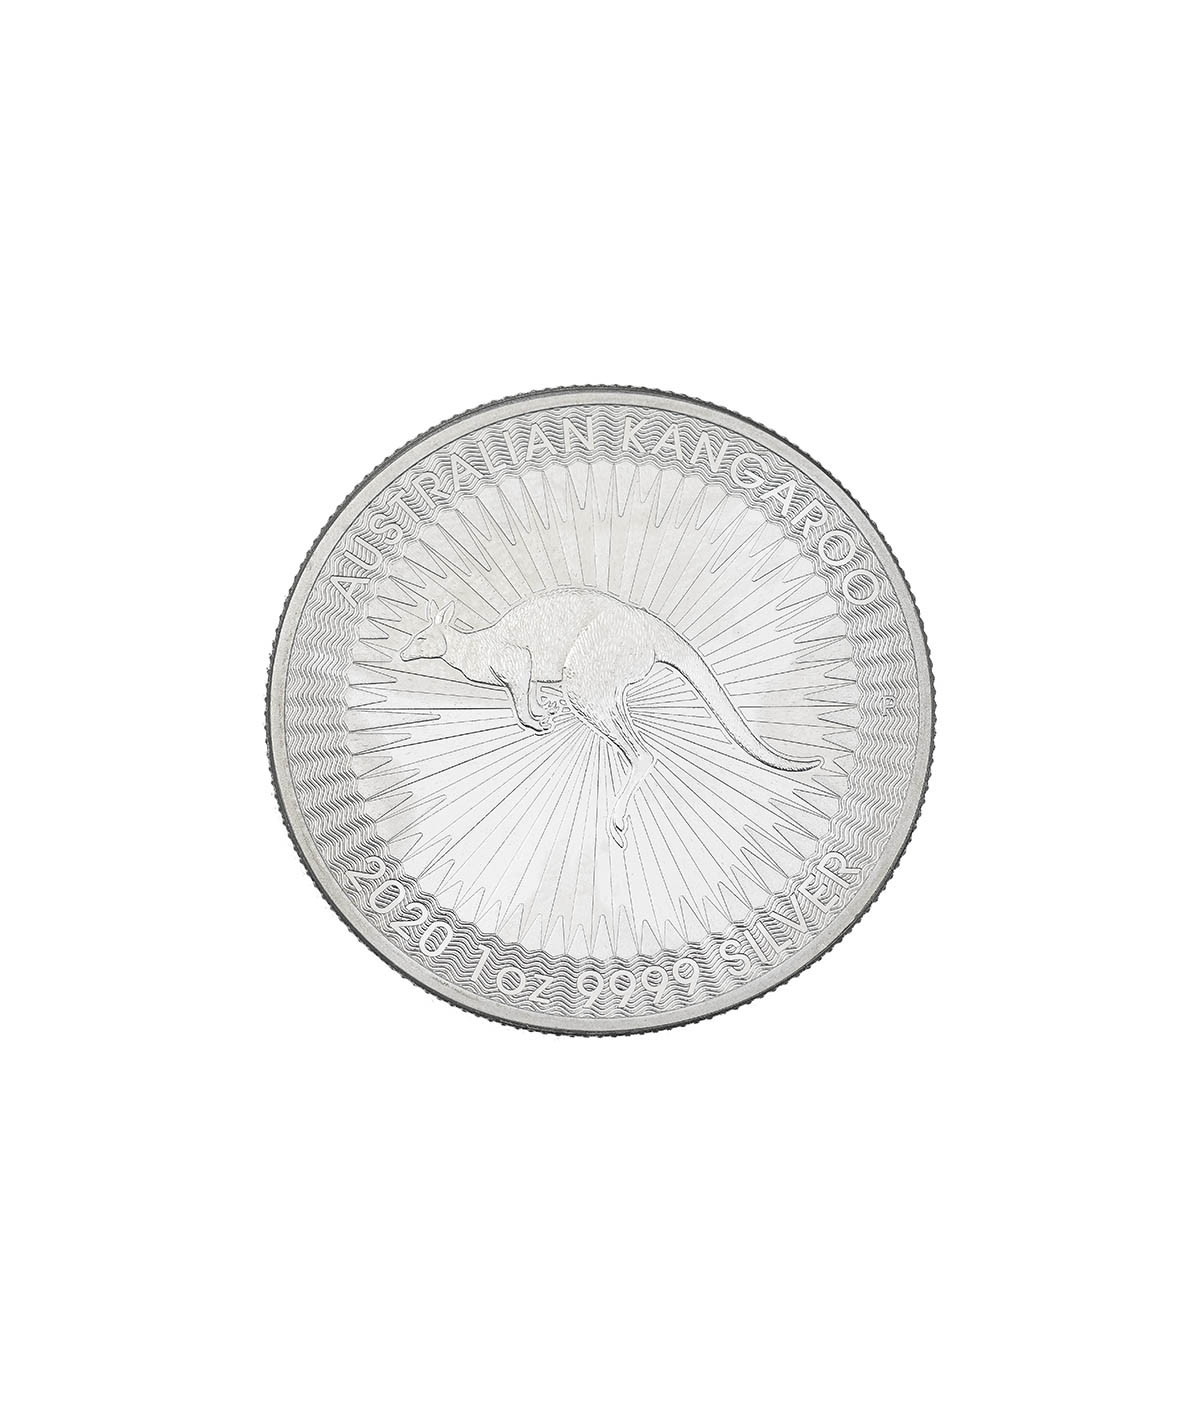 1oz Silver Coin Australian Kangaroo from 2020